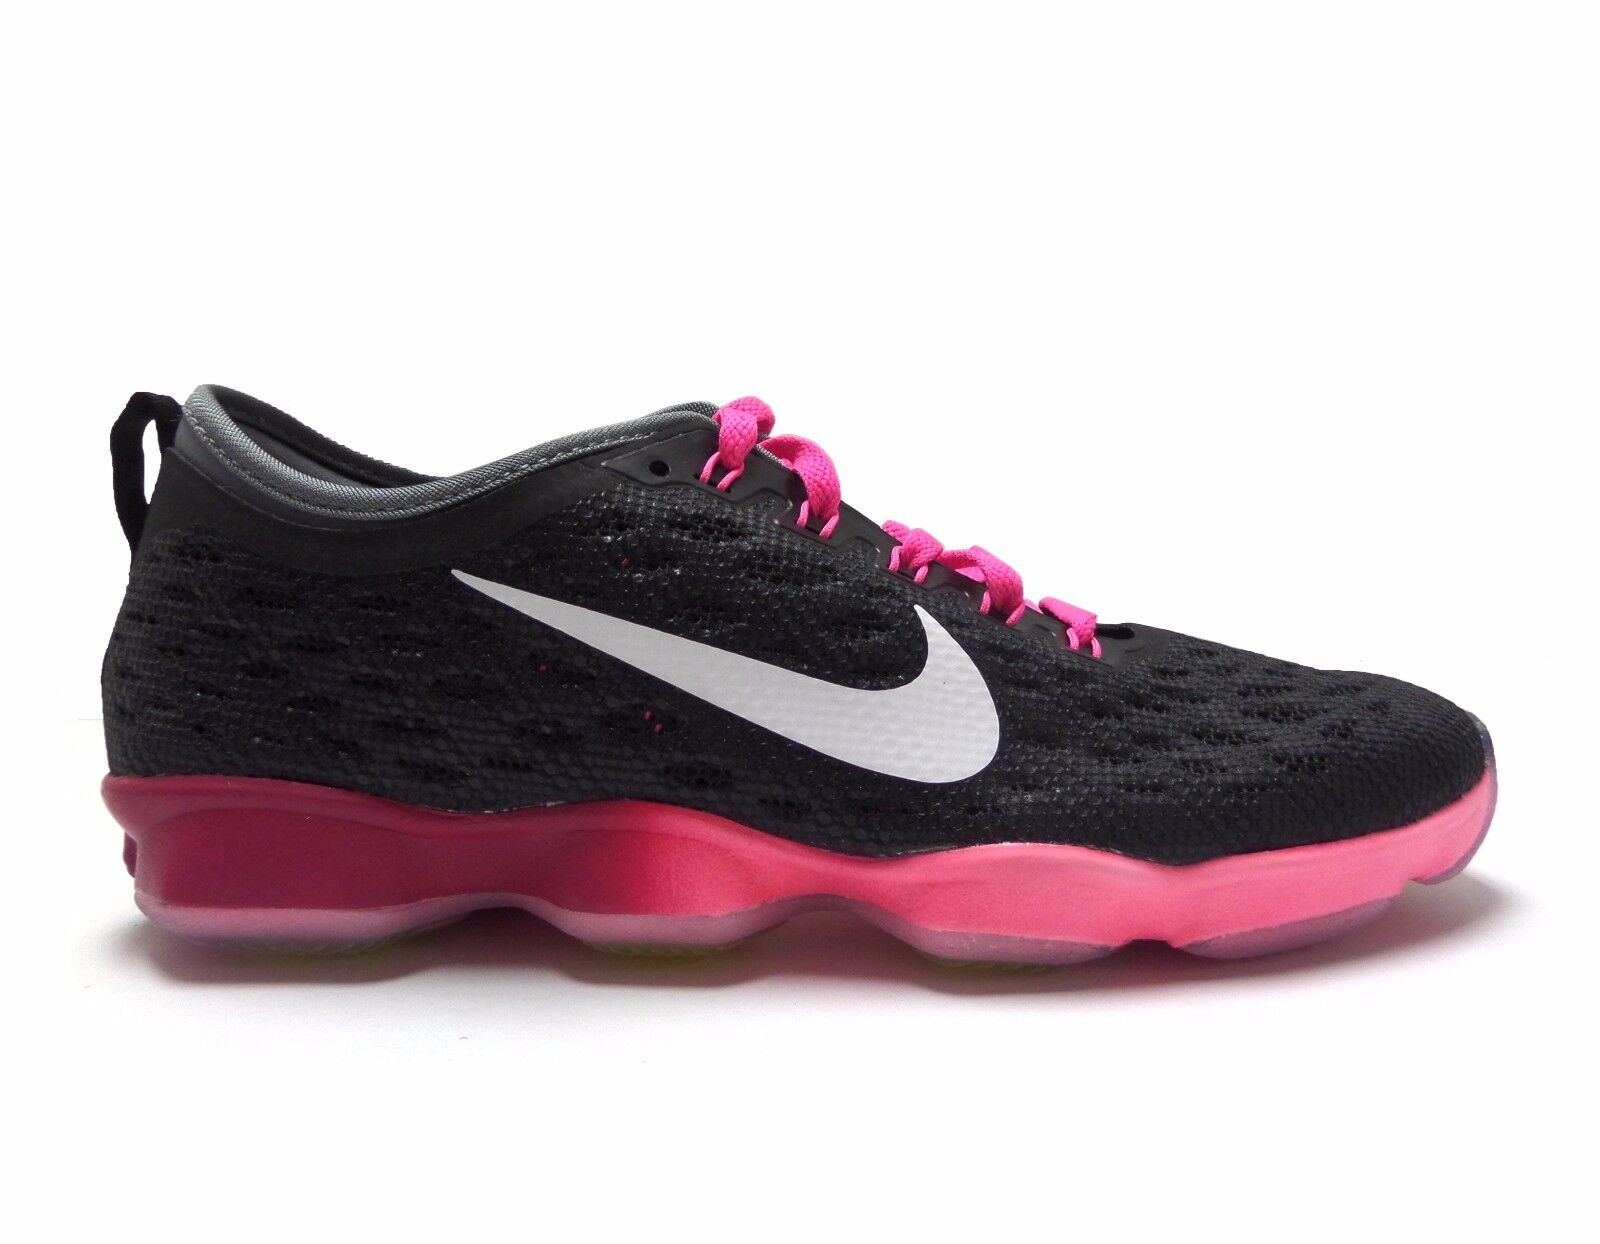 Nike Women's ZOOM FIT FIT FIT AGILITY Training shoes Black Pink Pow 684984-006 a1 20ff11